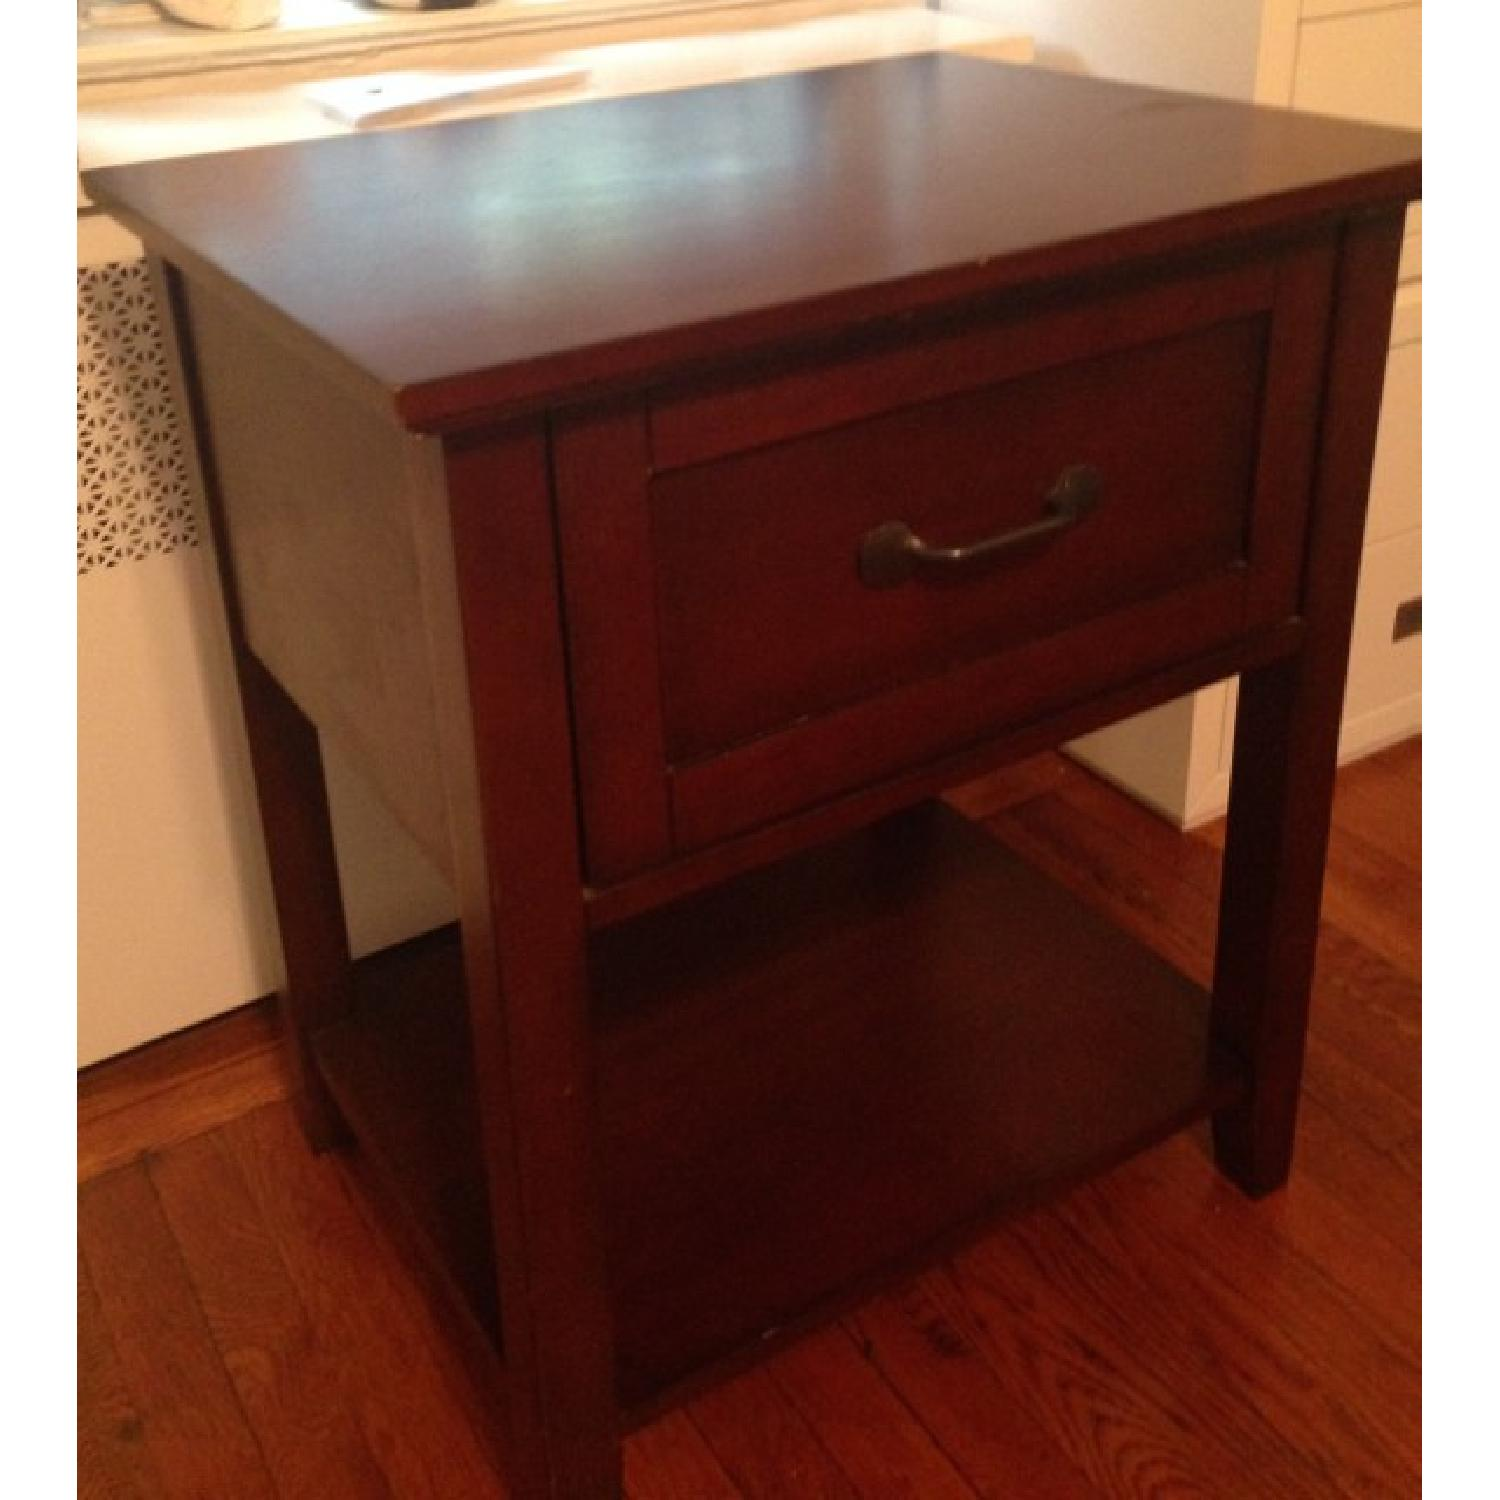 Pottery Barn Stratton Bedside Table - image-1